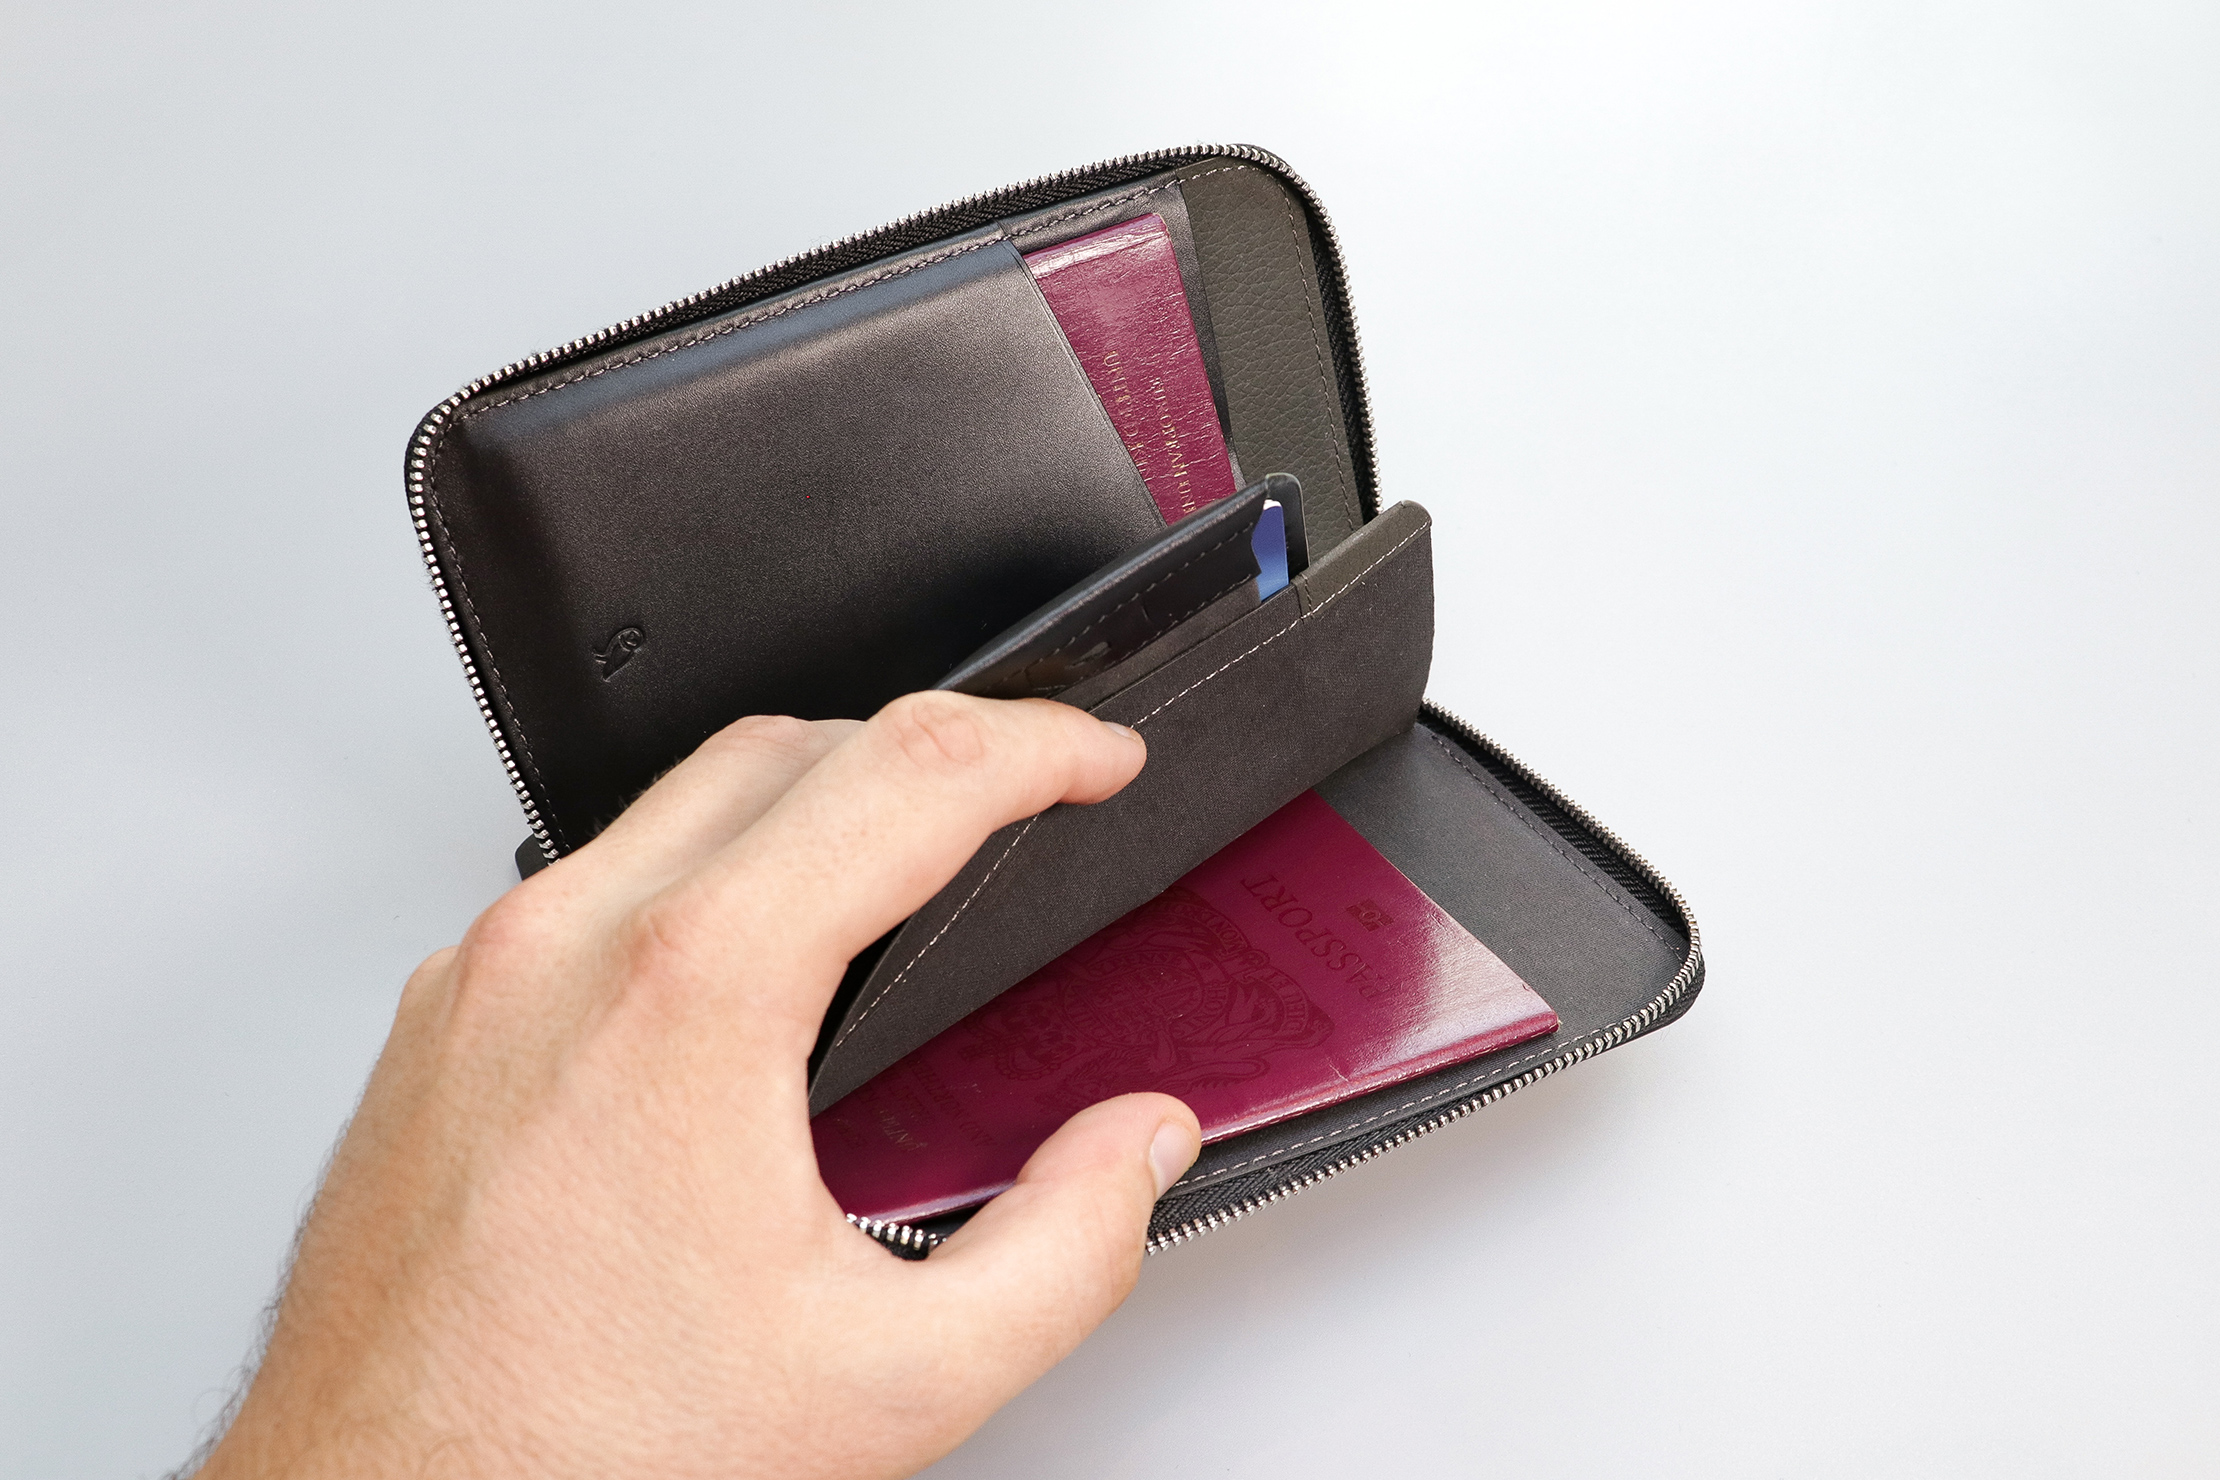 Bellroy Travel Folio With A Passport In The Back Compartment